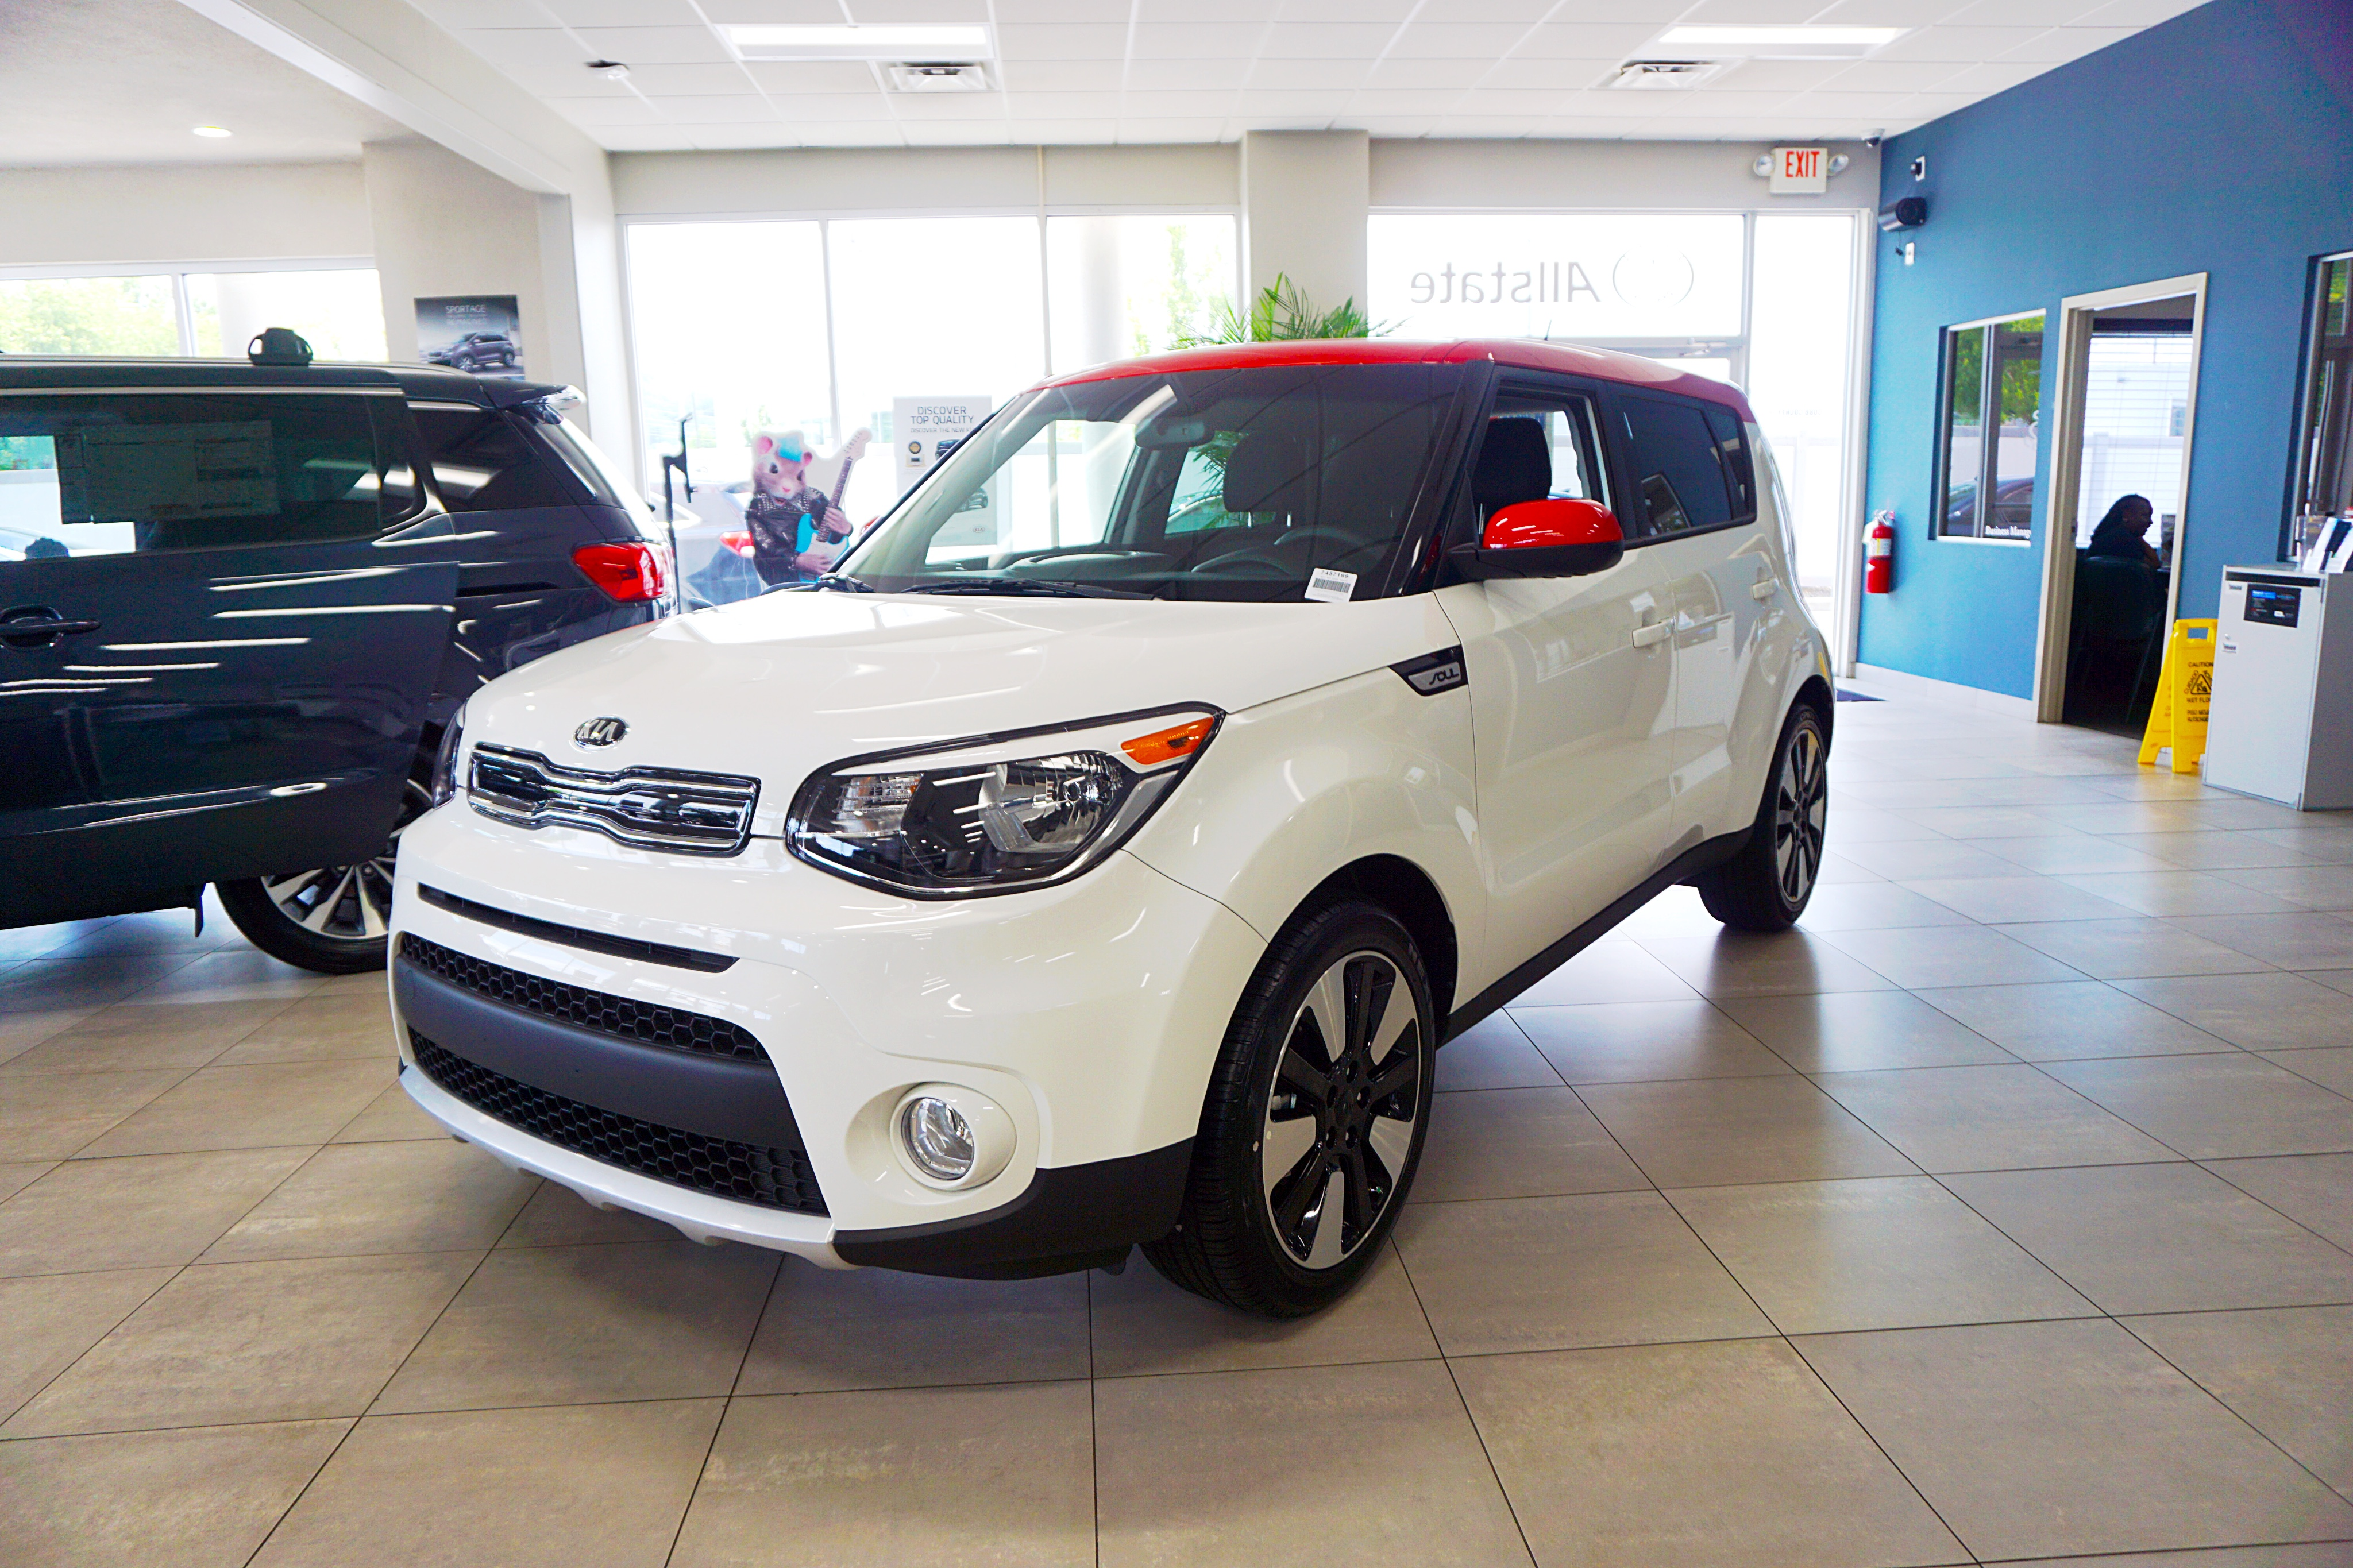 new your car kia used appointment dealerships dealership audi next in at ga service schedule gwinnett